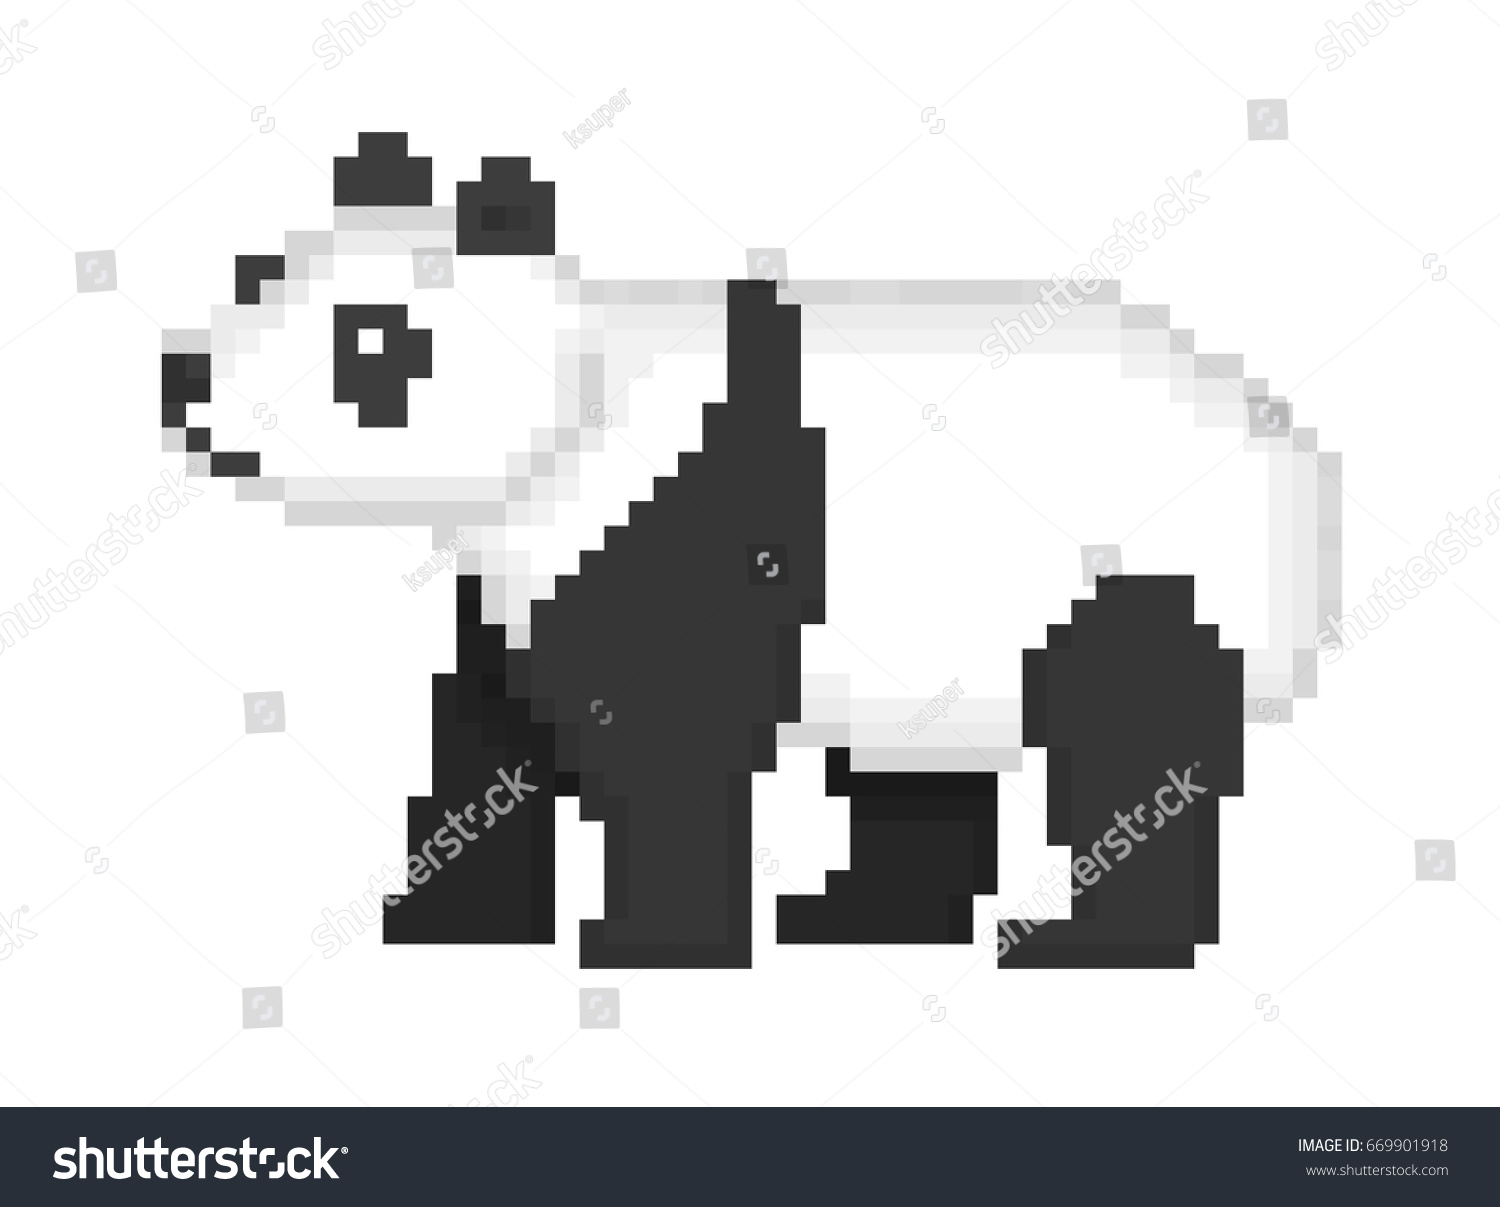 Old school 8 bit pixel art stock vector 669901918 shutterstock old school 8 bit pixel art black and white giant panda bear standing on the ground biocorpaavc Image collections